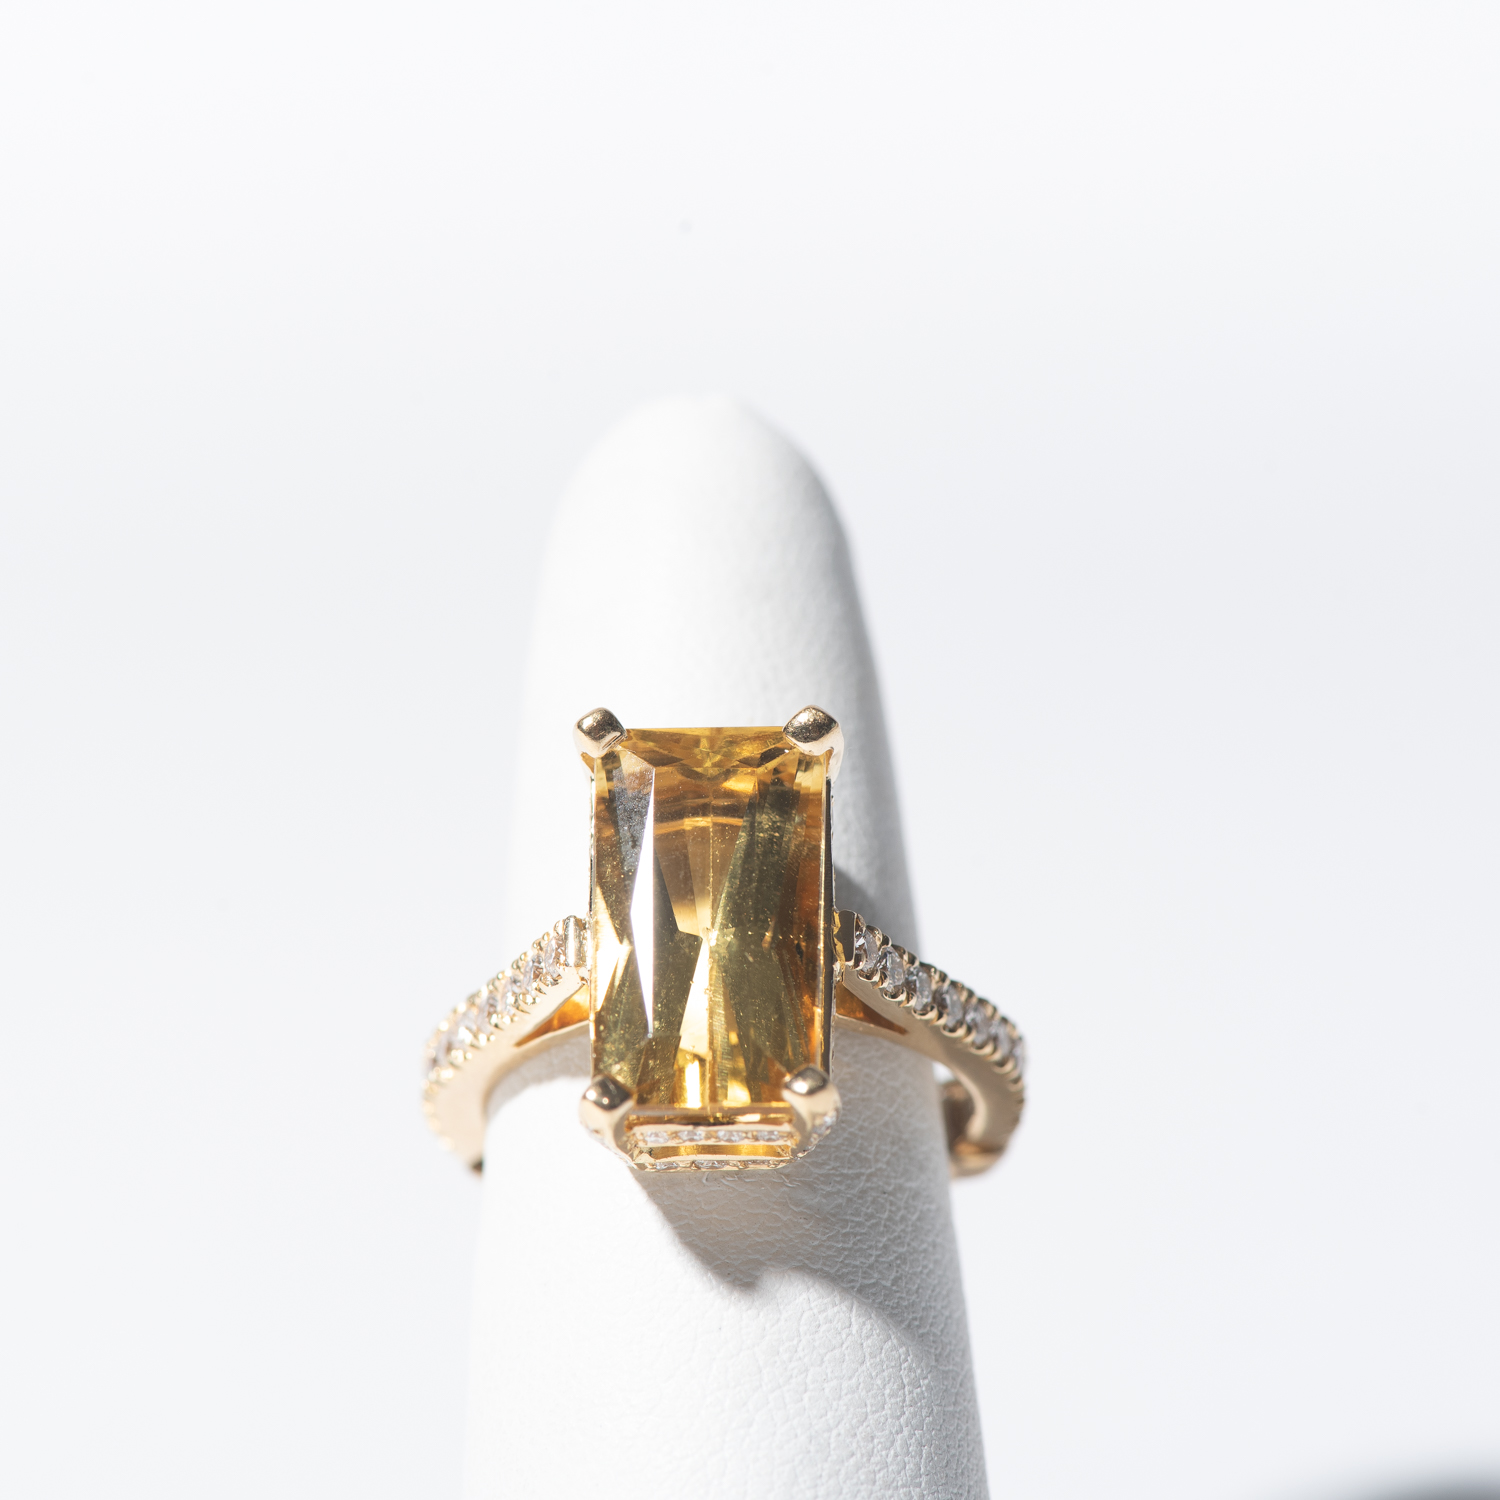 Design Two. - 6ct Heliodor with .4ct Diamond Band, Handset in Yellow Gold Mounting